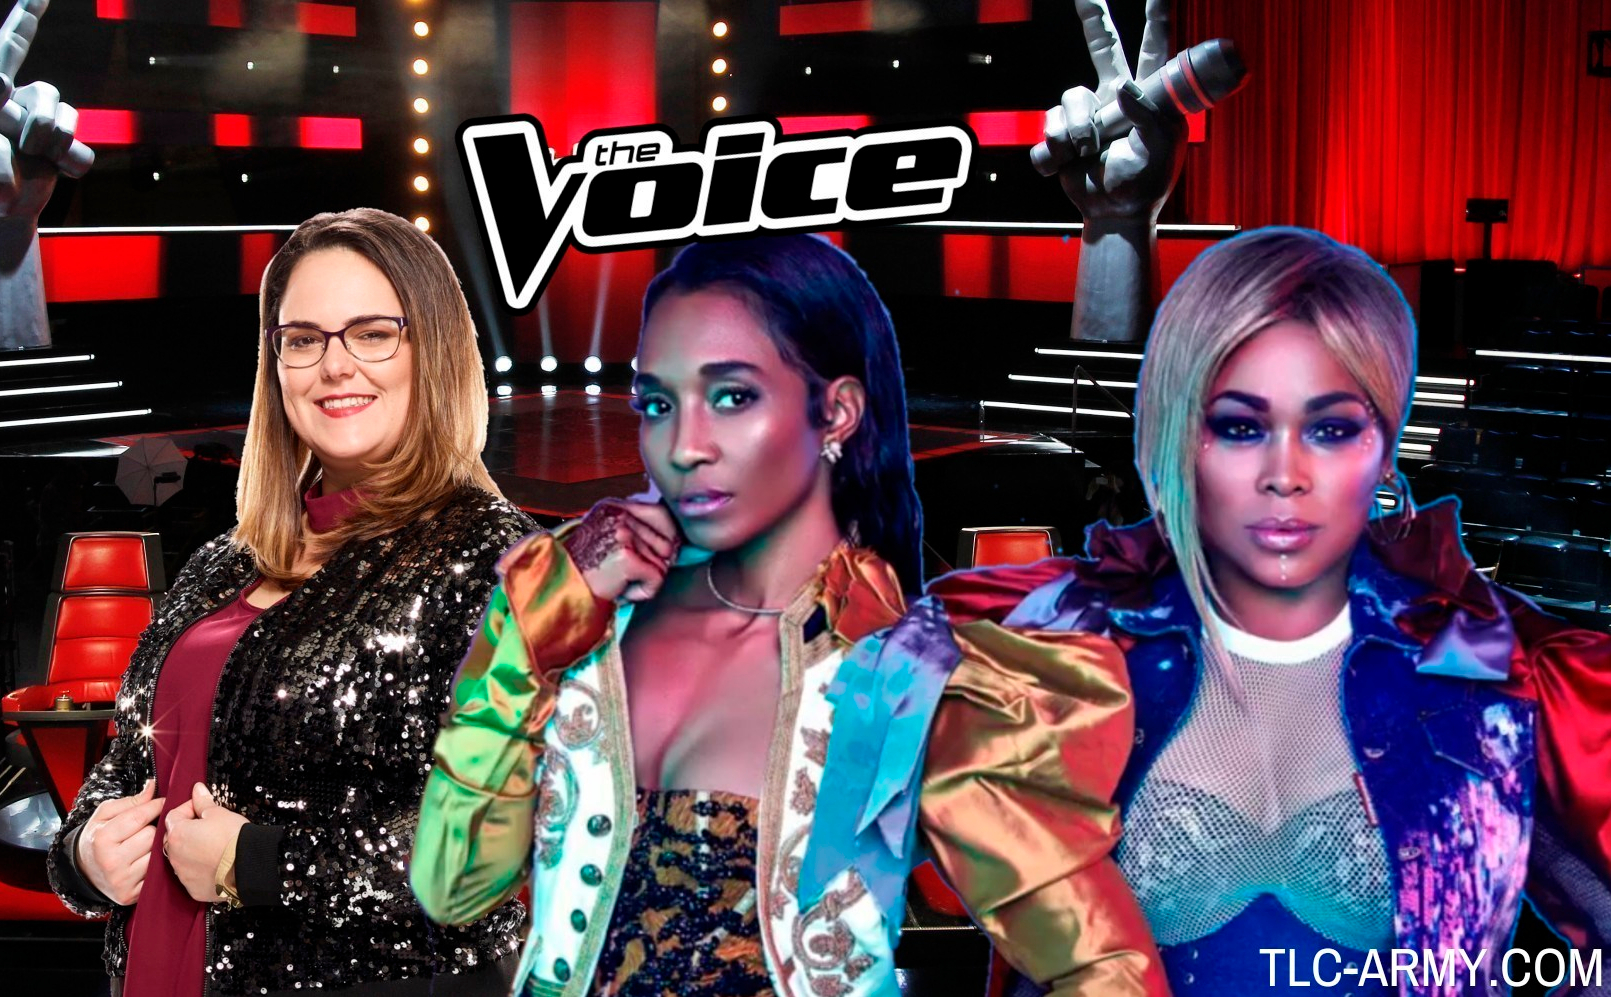 'The Voice' Contestant Kim Cherry Receives A Surprise From TLC